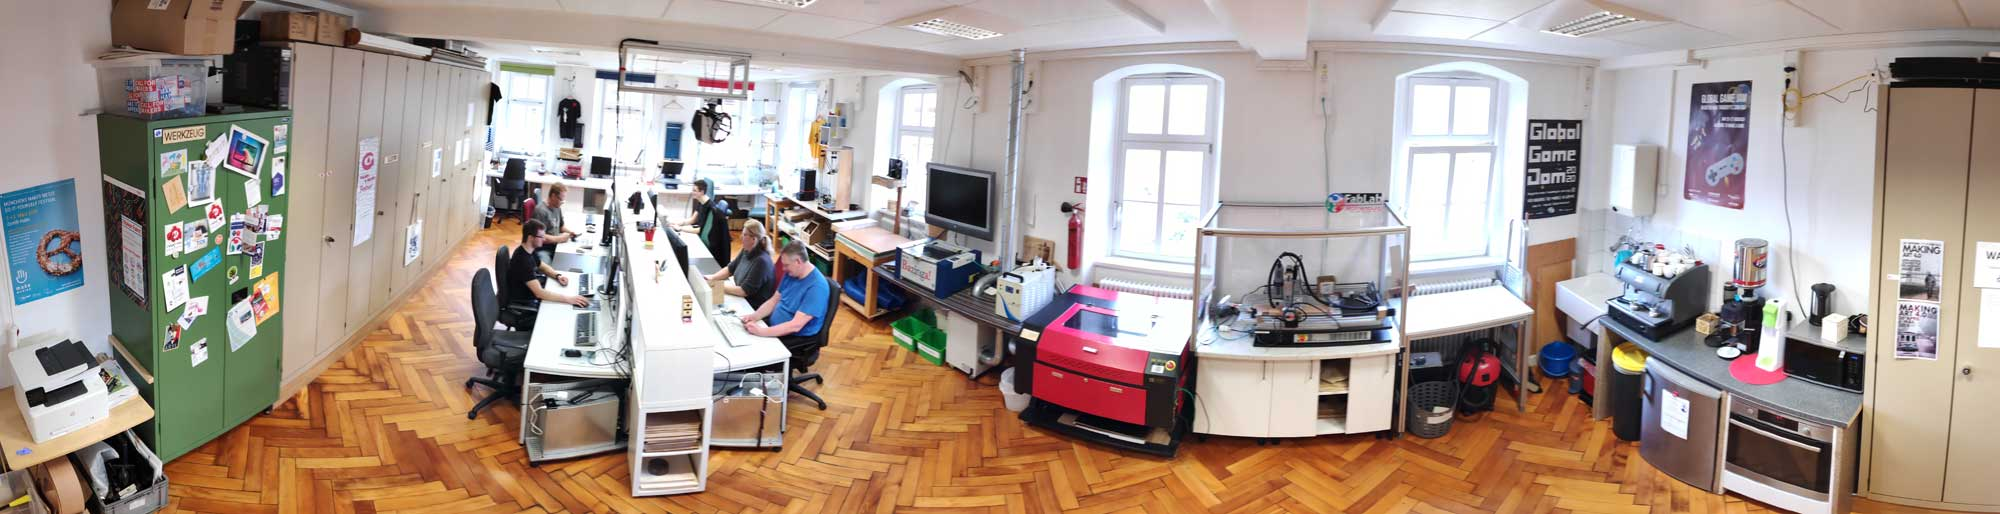 FabLab Rothenburg 2020